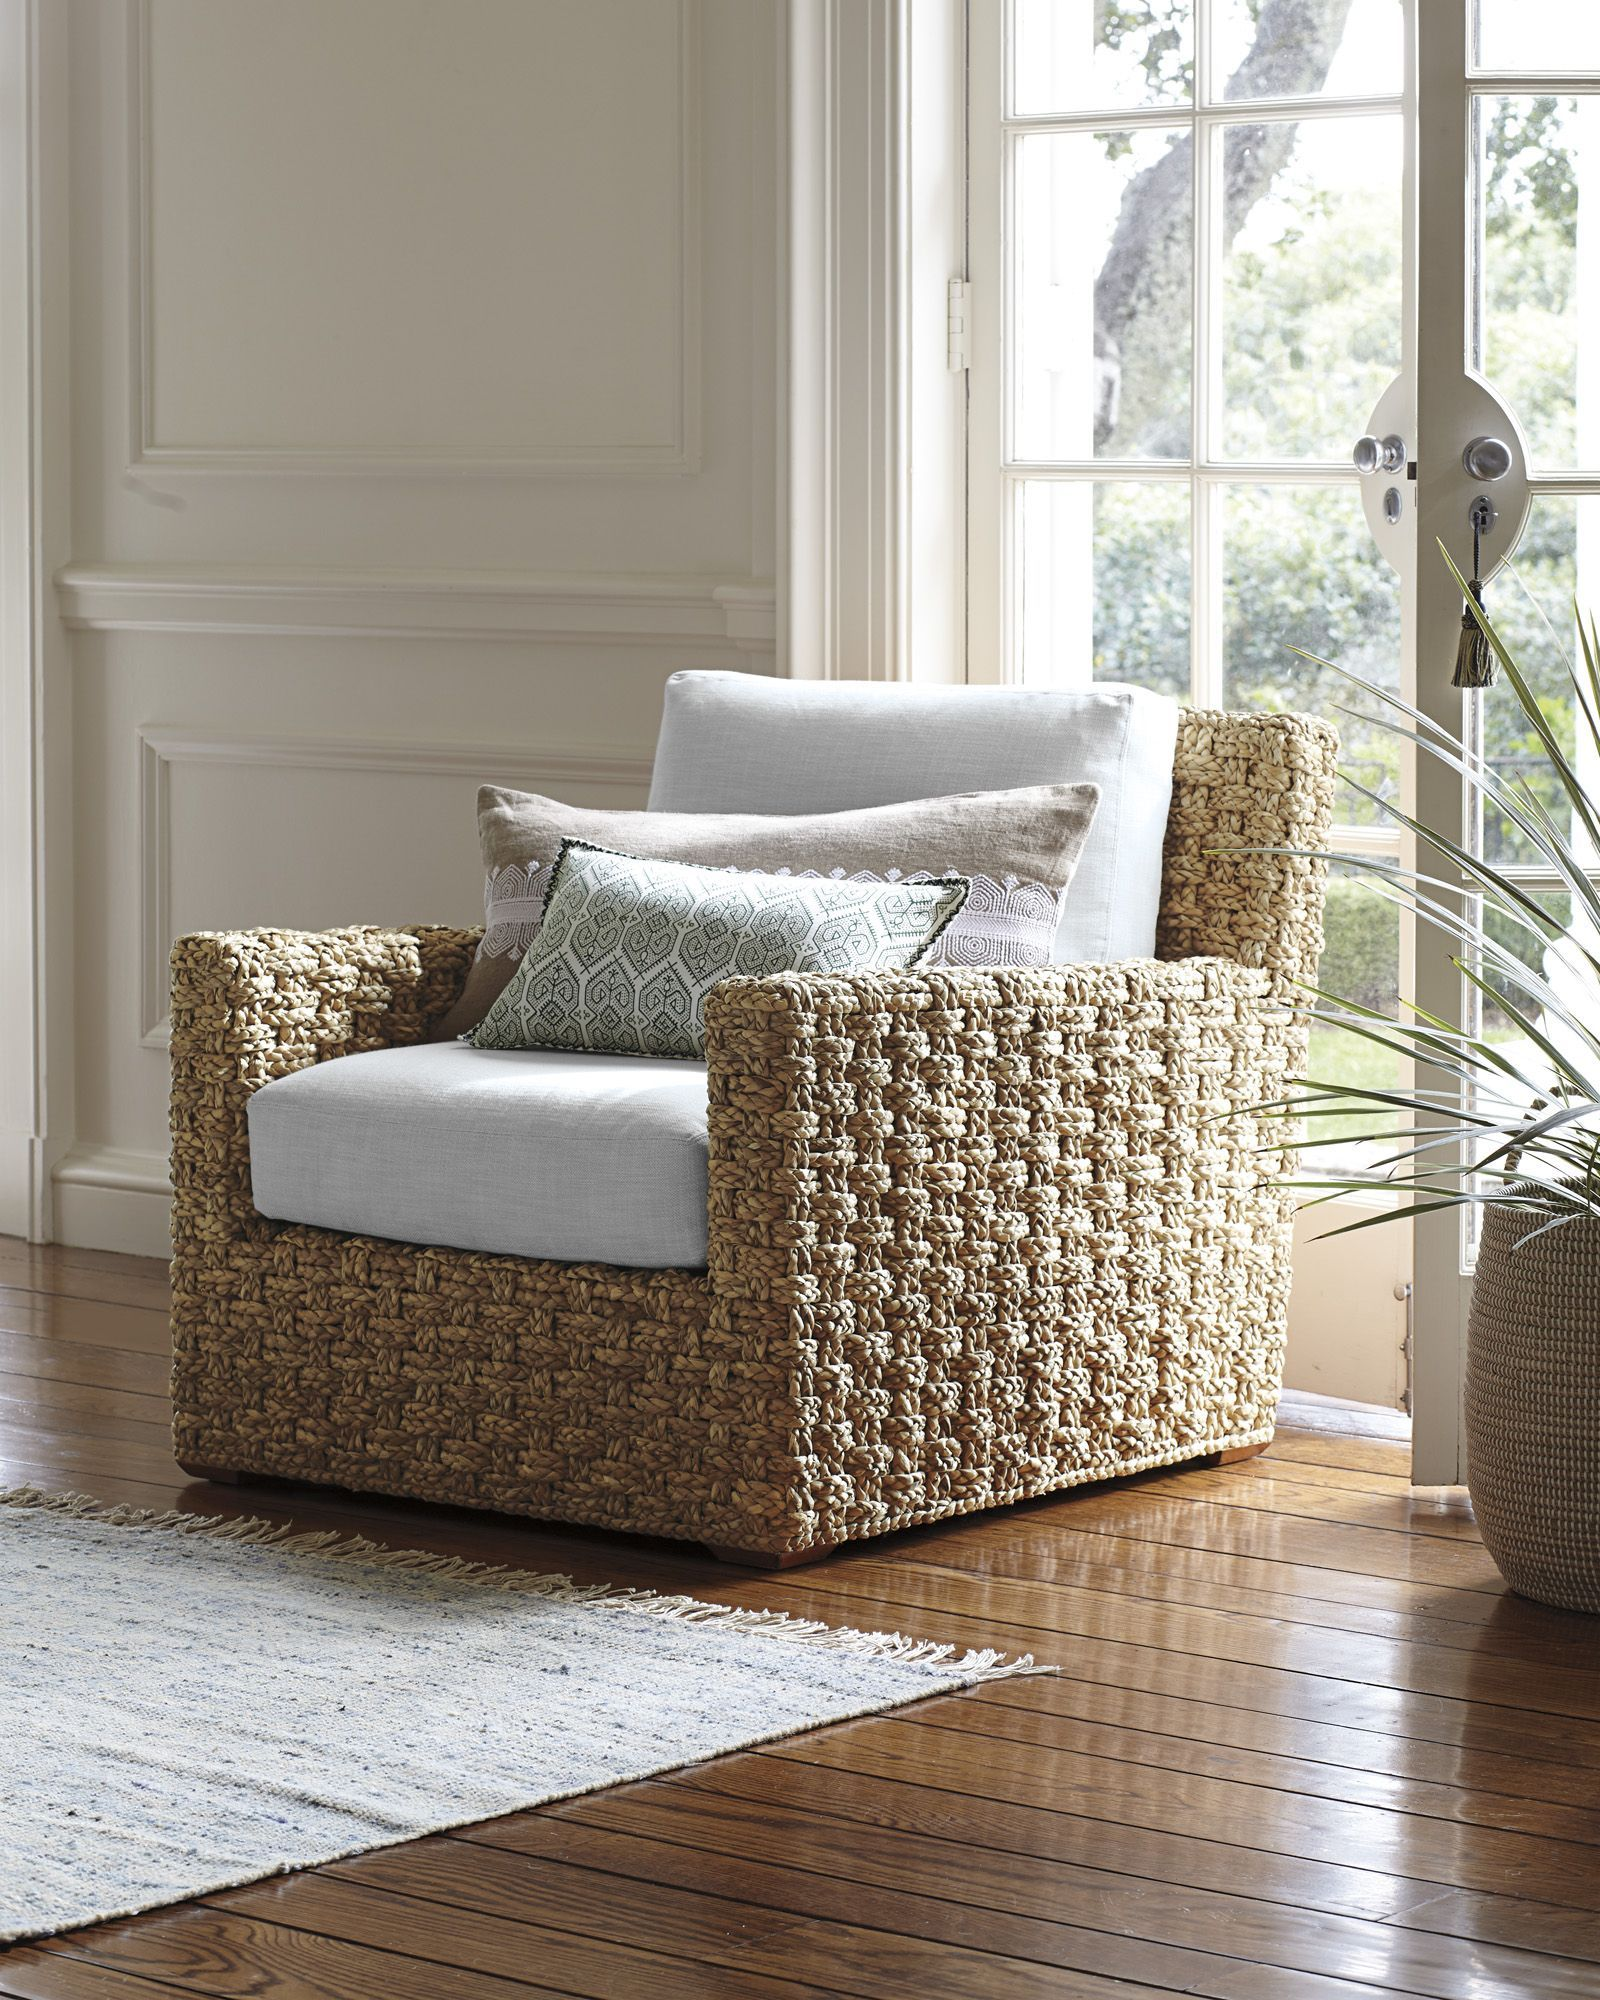 Costa Lounge Chair (With images) | Coastal living rooms ...